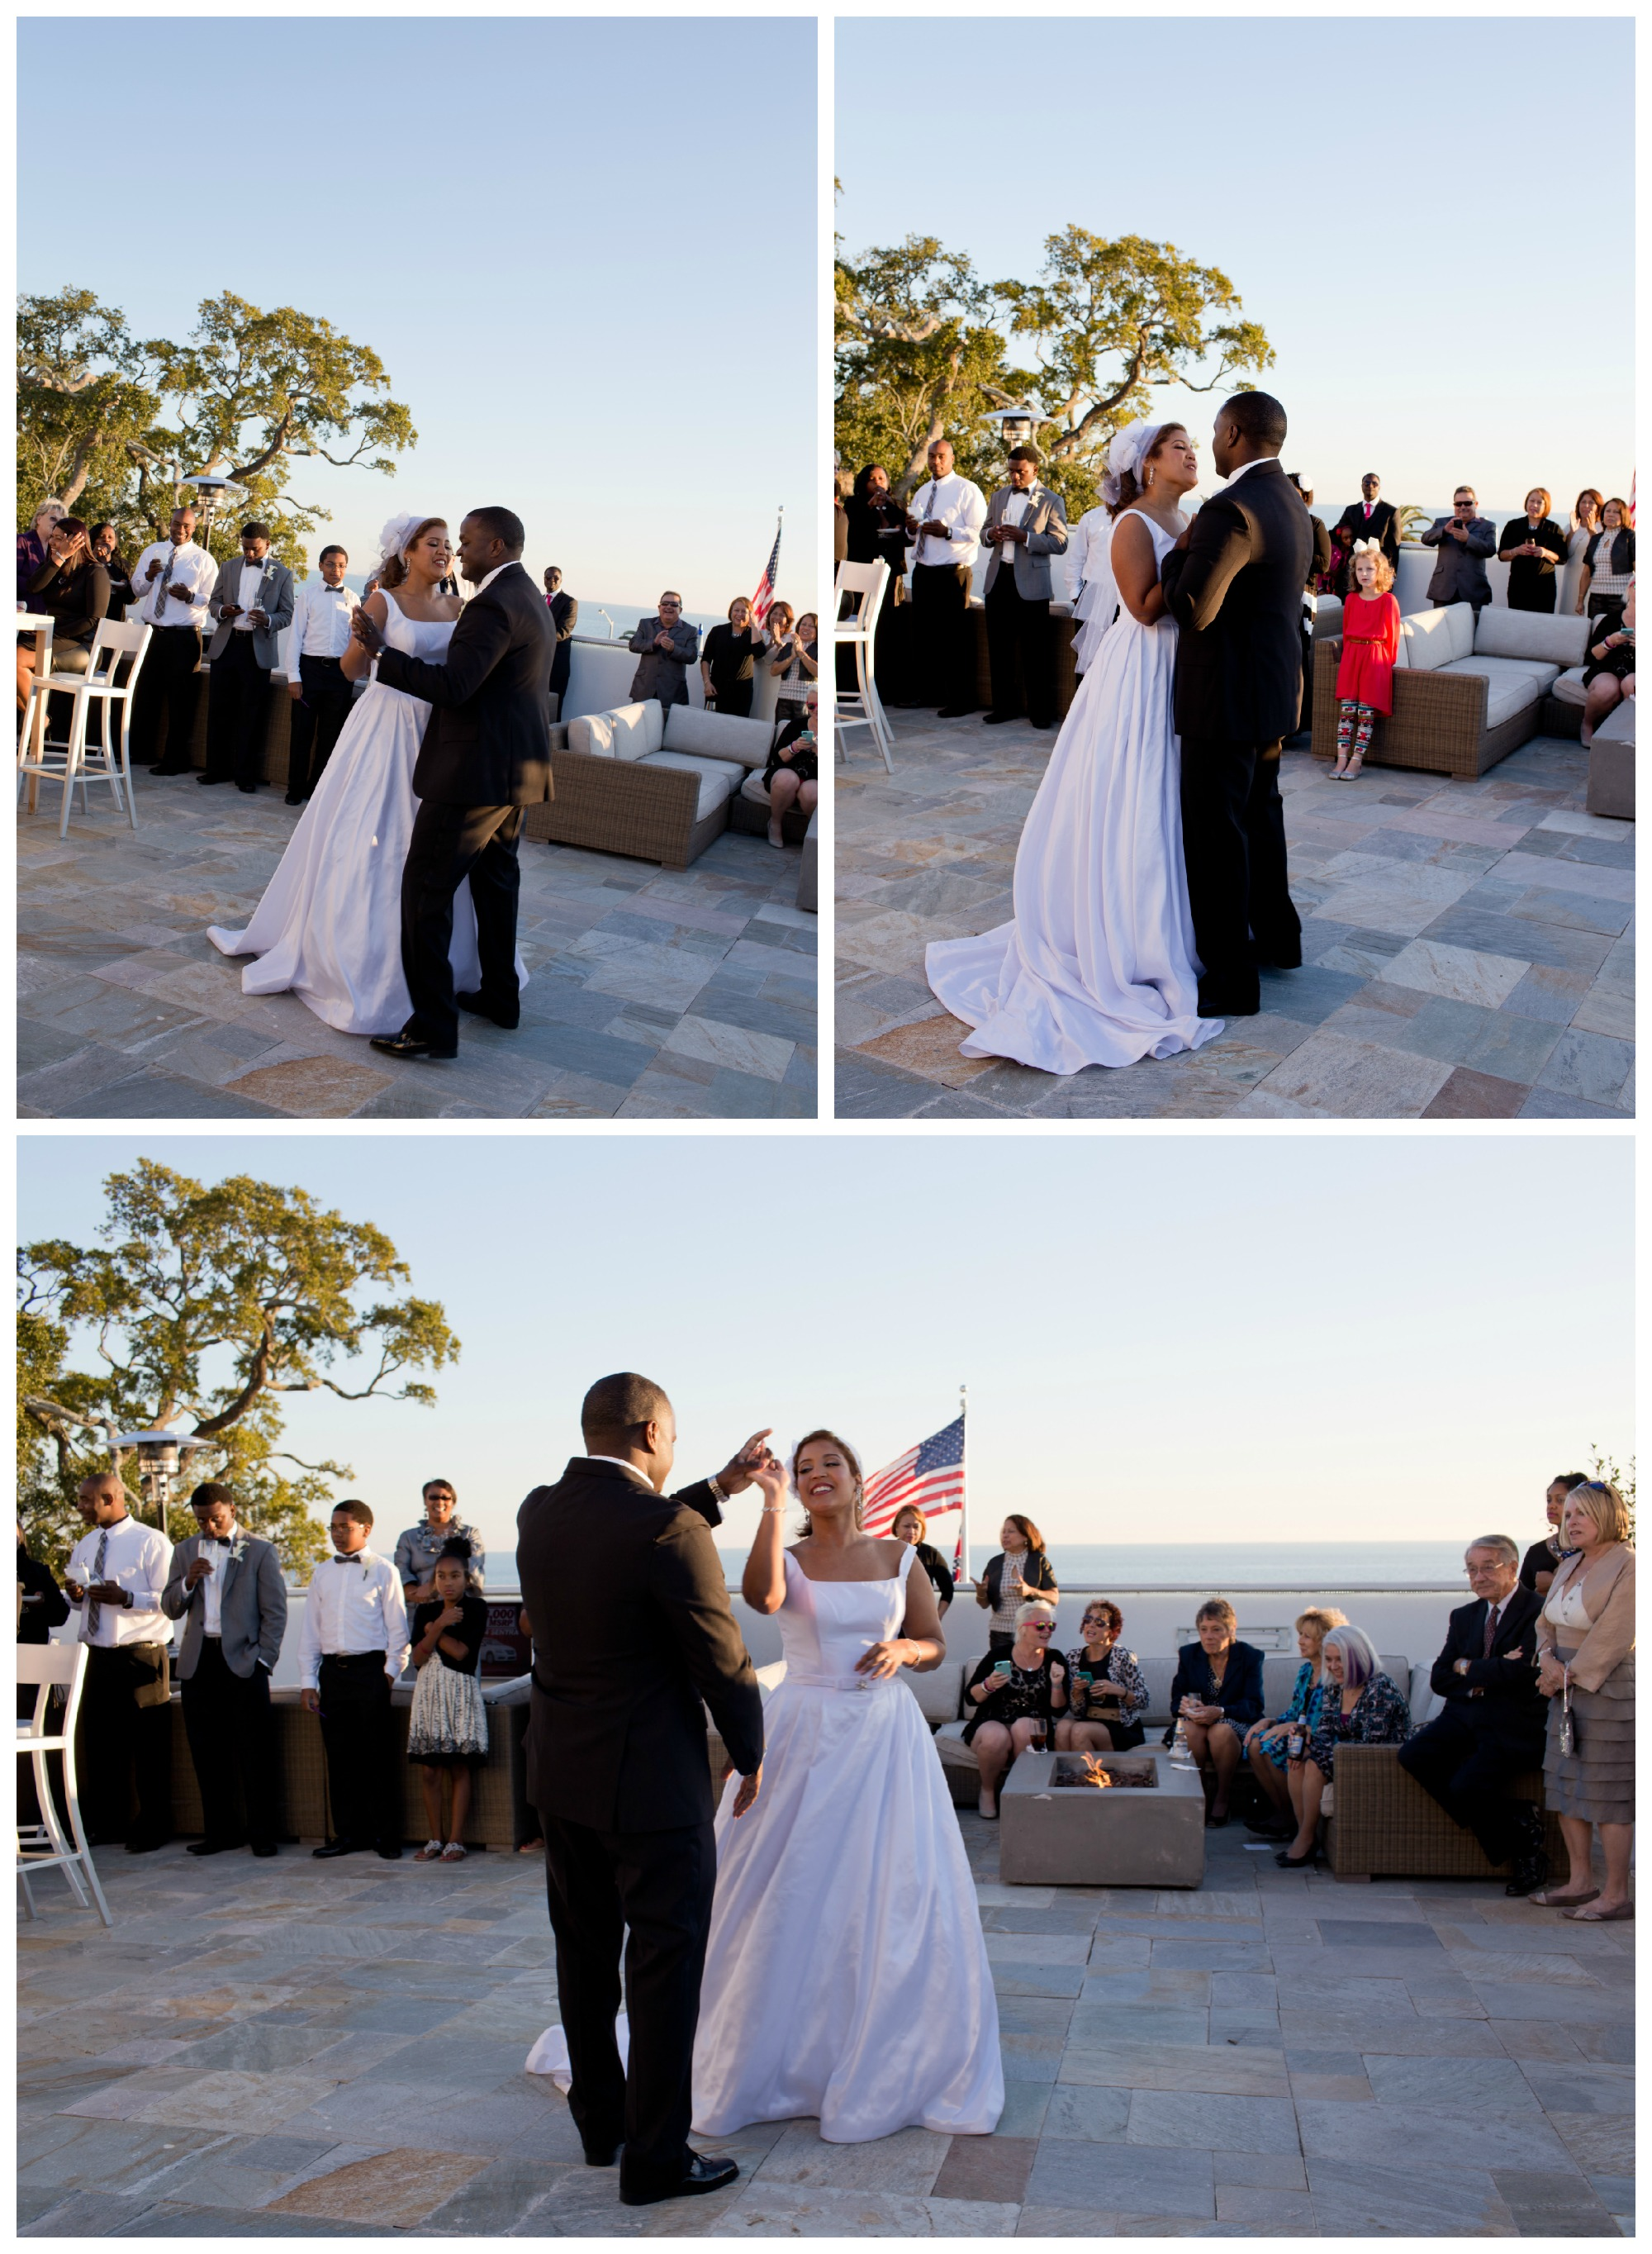 wedding first dance photos (Uninvented Colors Photography)